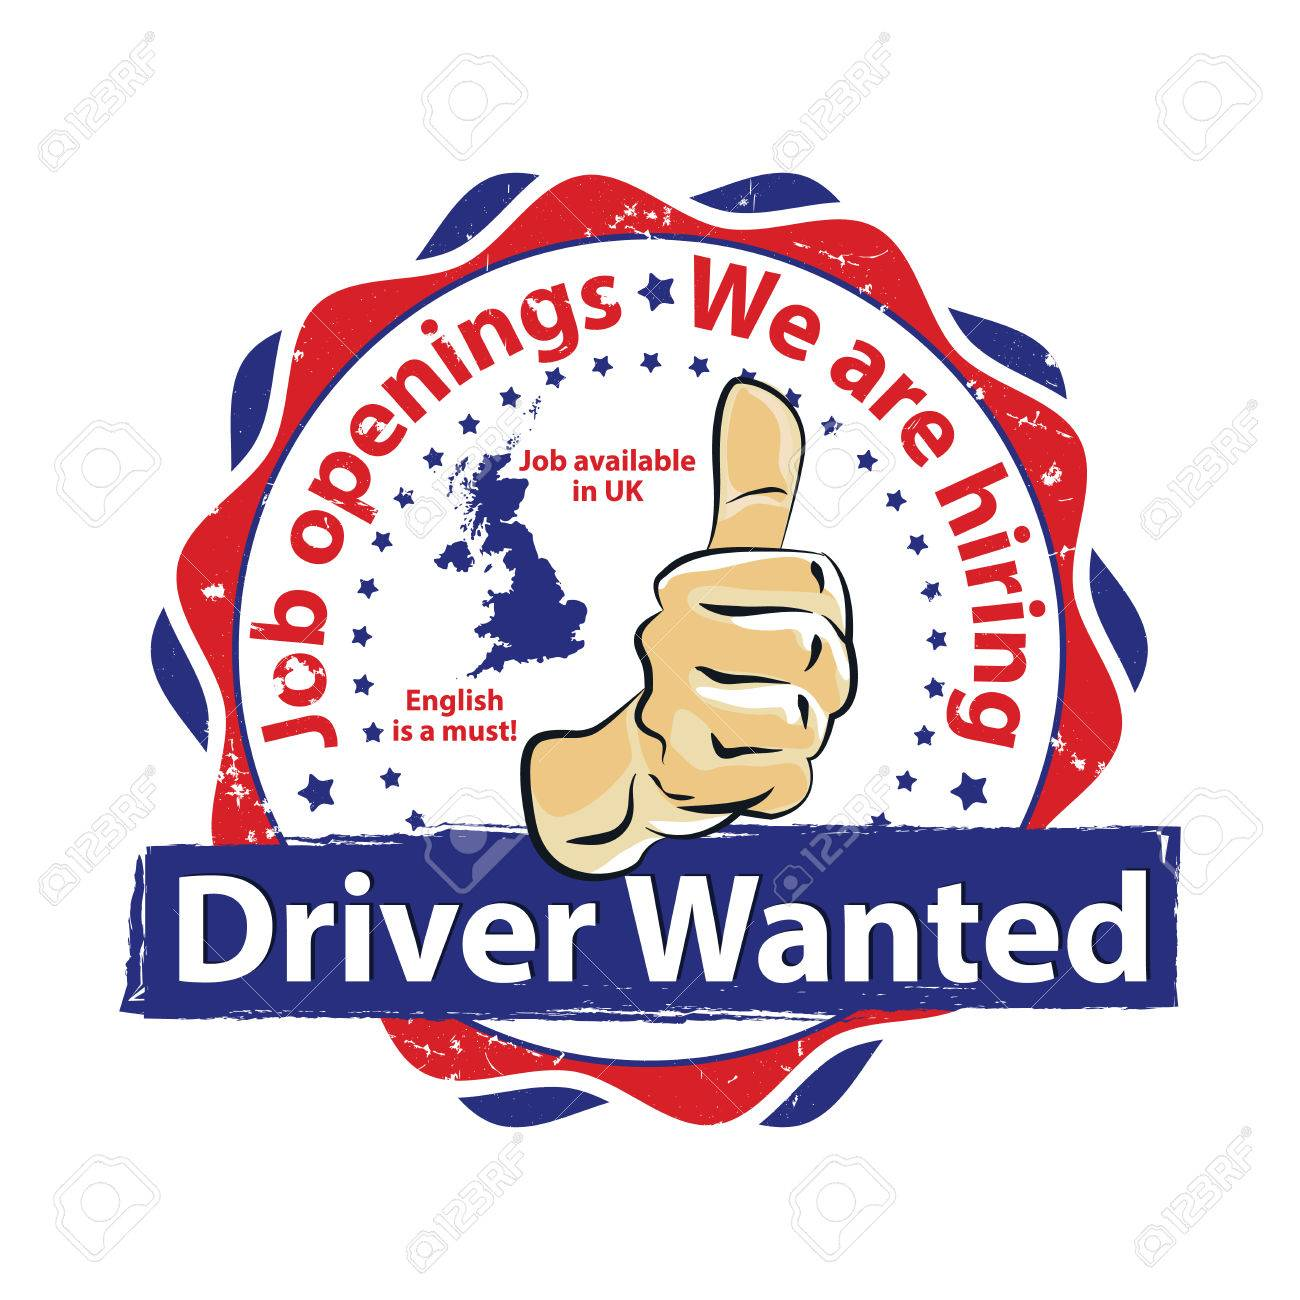 Print Colors Used Drivers Wanted Jobs In UK